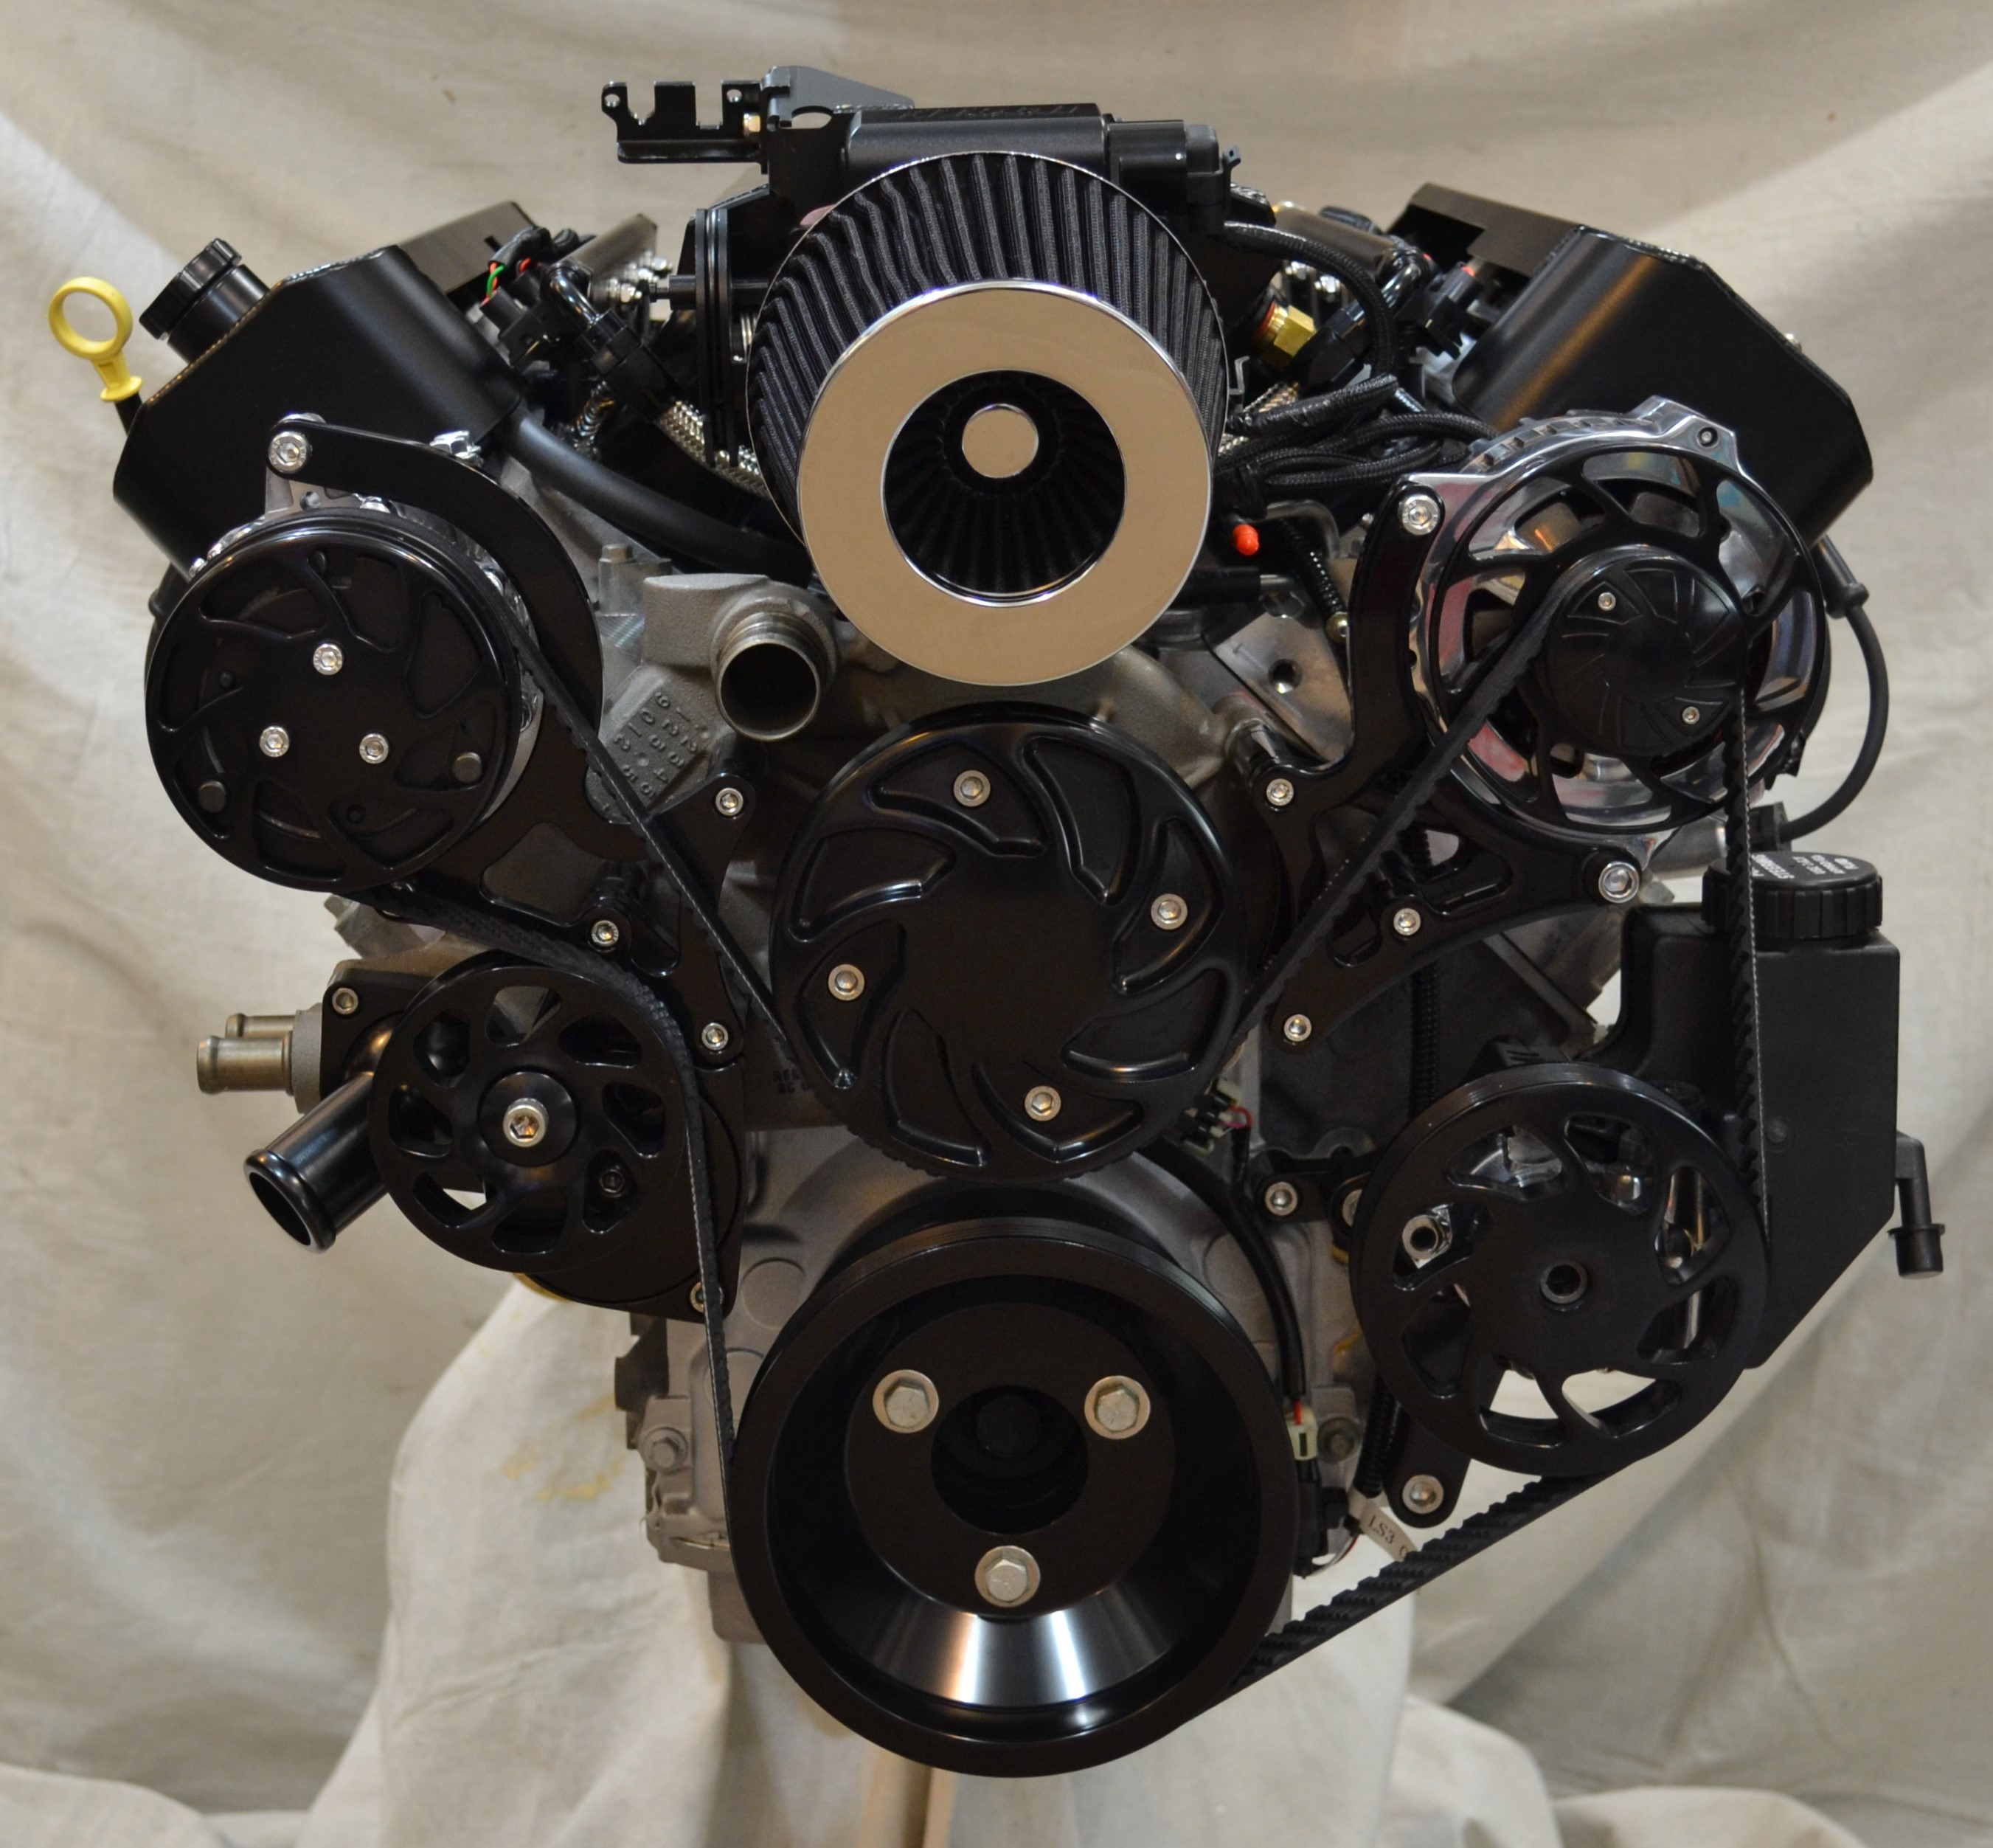 Dyno Tested LS3 500HP Deluxe Black Trim Engine Package OSSLS3500DFB